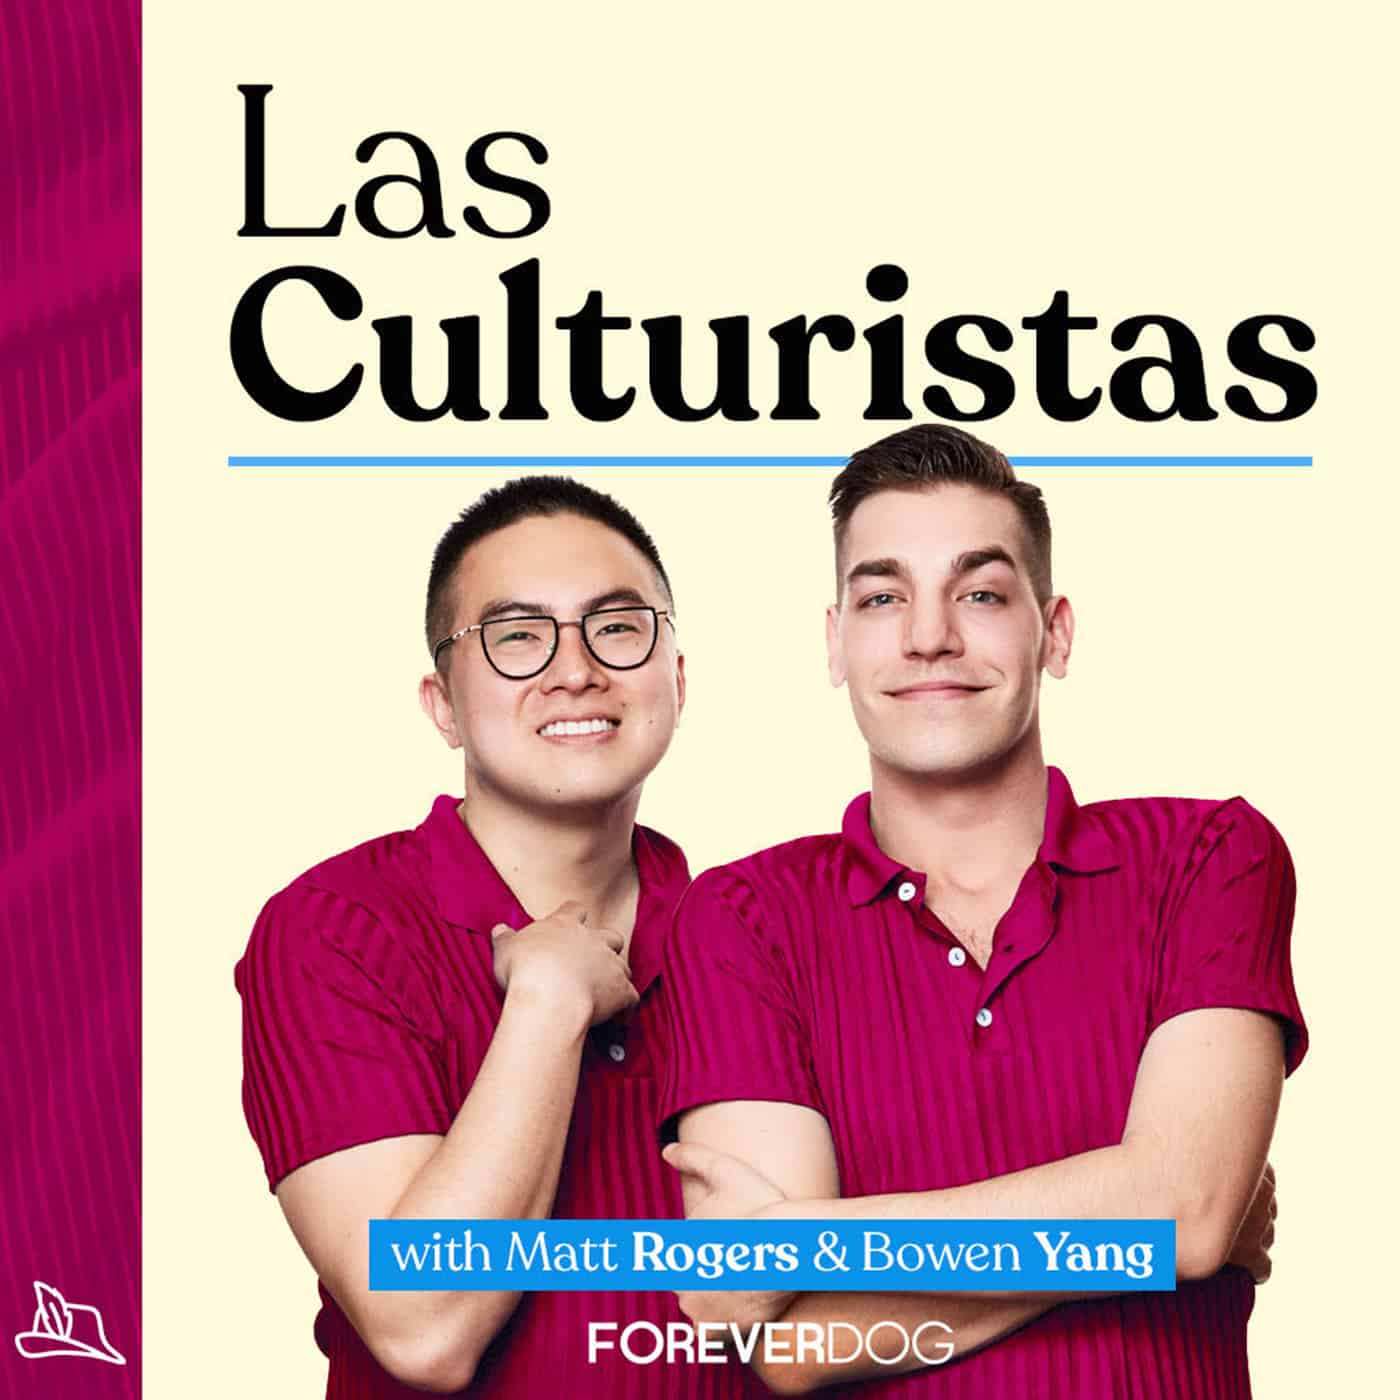 So, what makes Las Culturistas worth adding to your podcast routine?